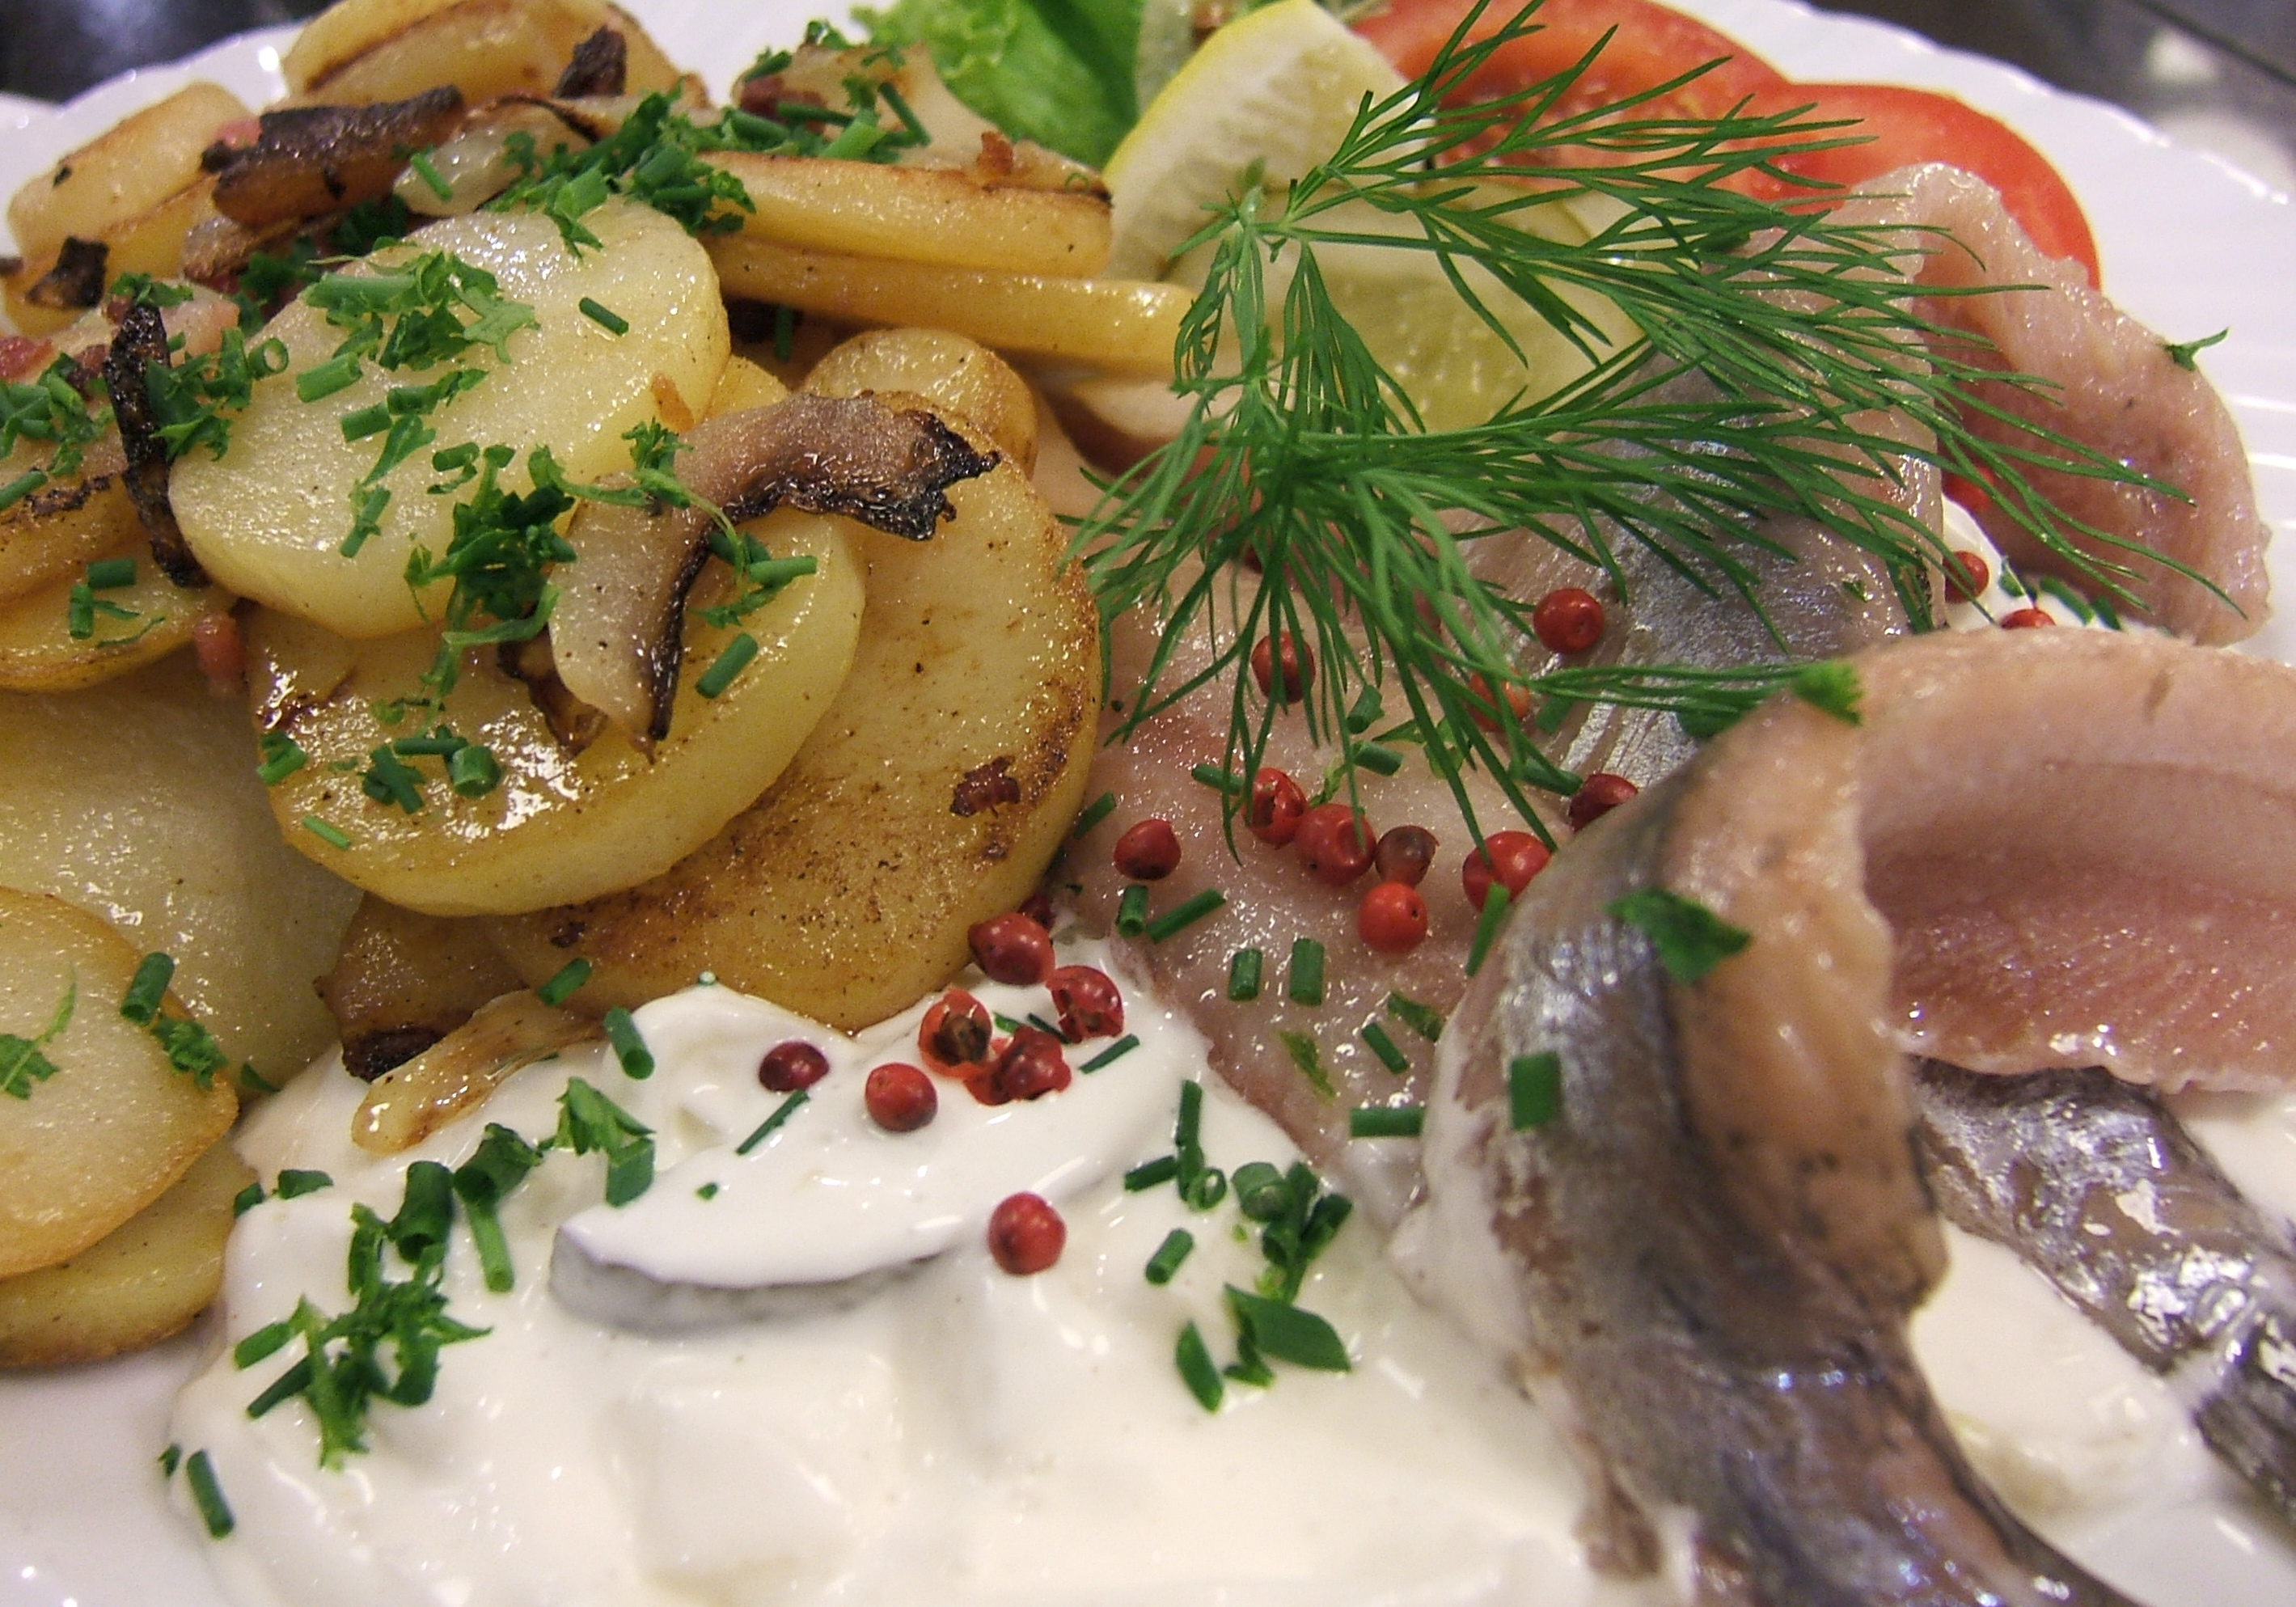 File Herring With Sour Cream And Onion And Fried Potato Jpg